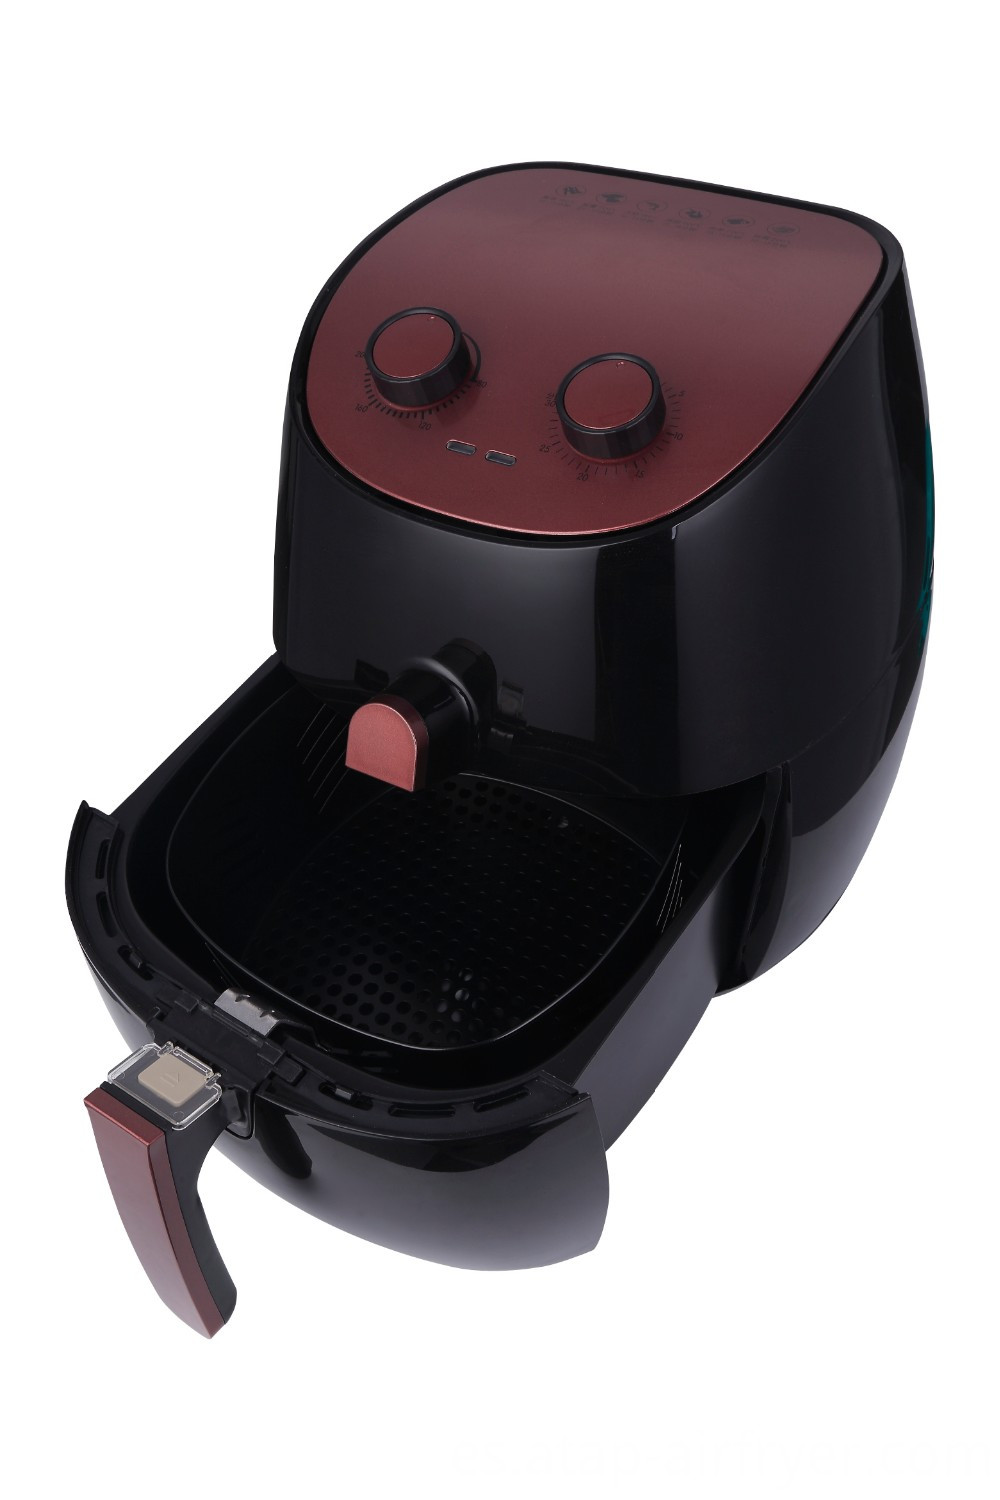 Less Oil Air Fryer